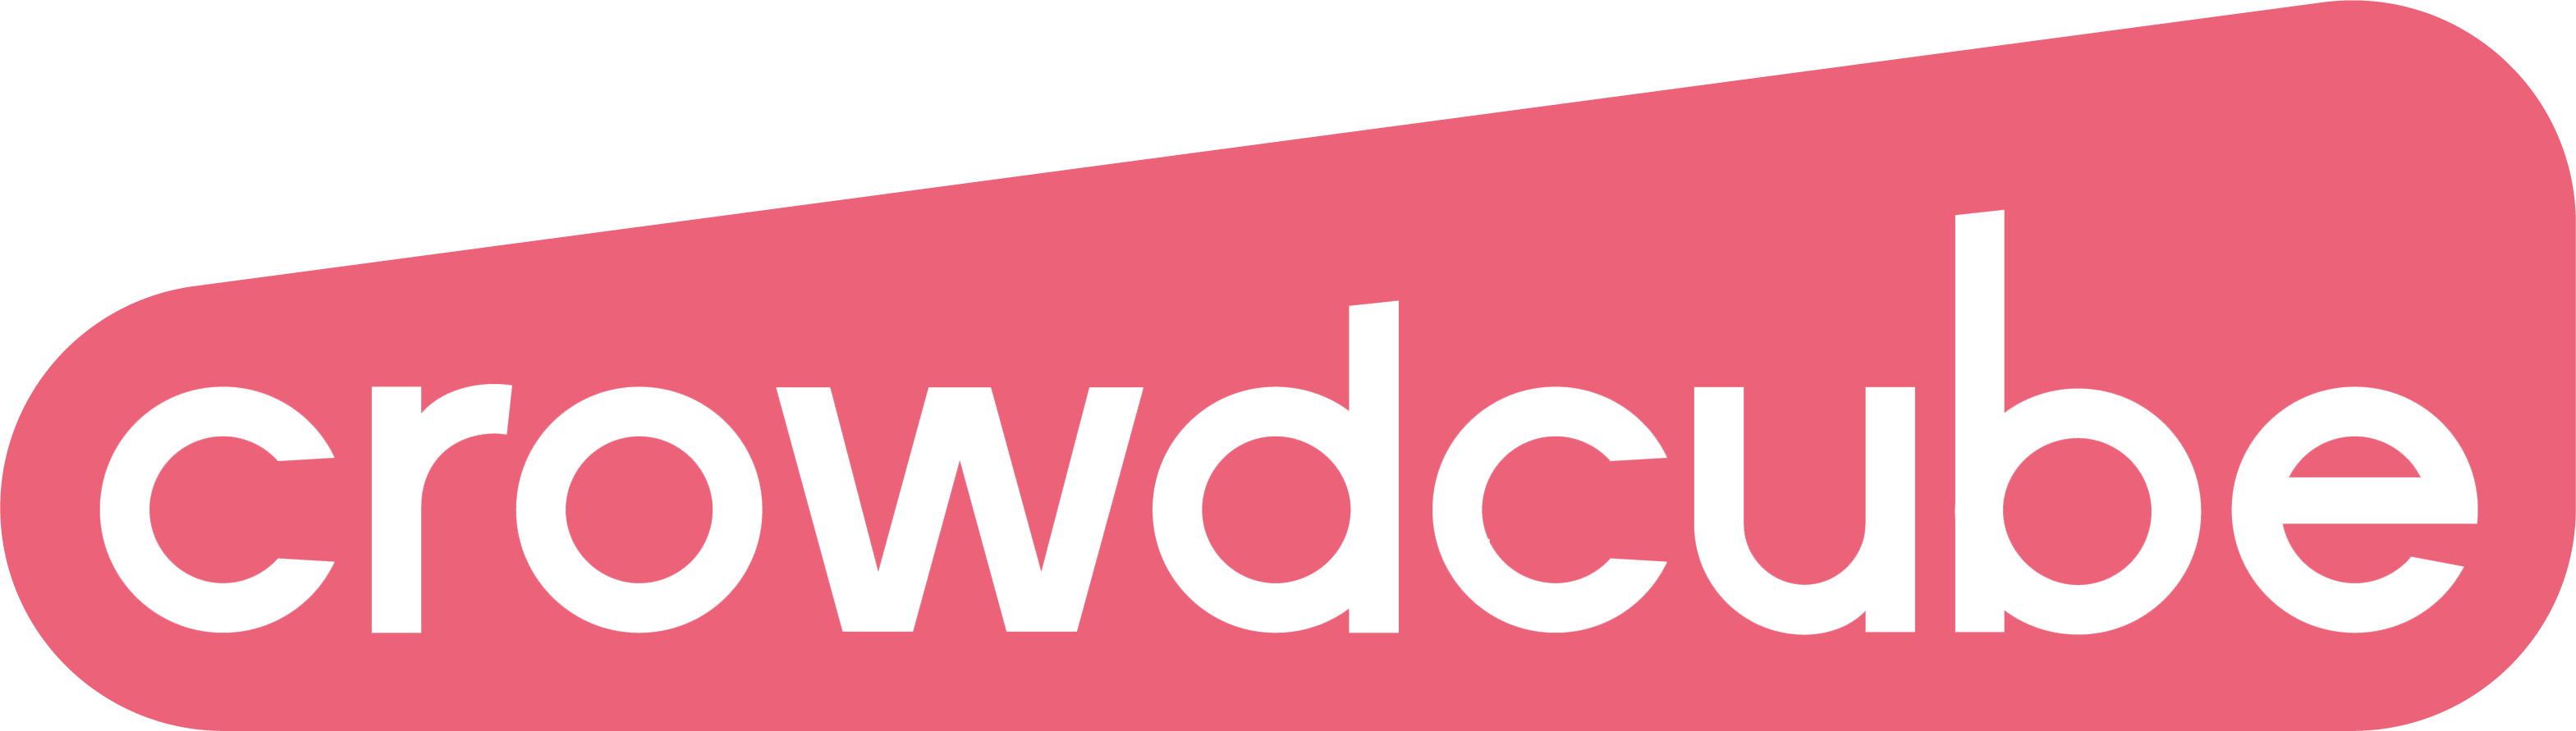 crowdcube logo in petpanion pink color